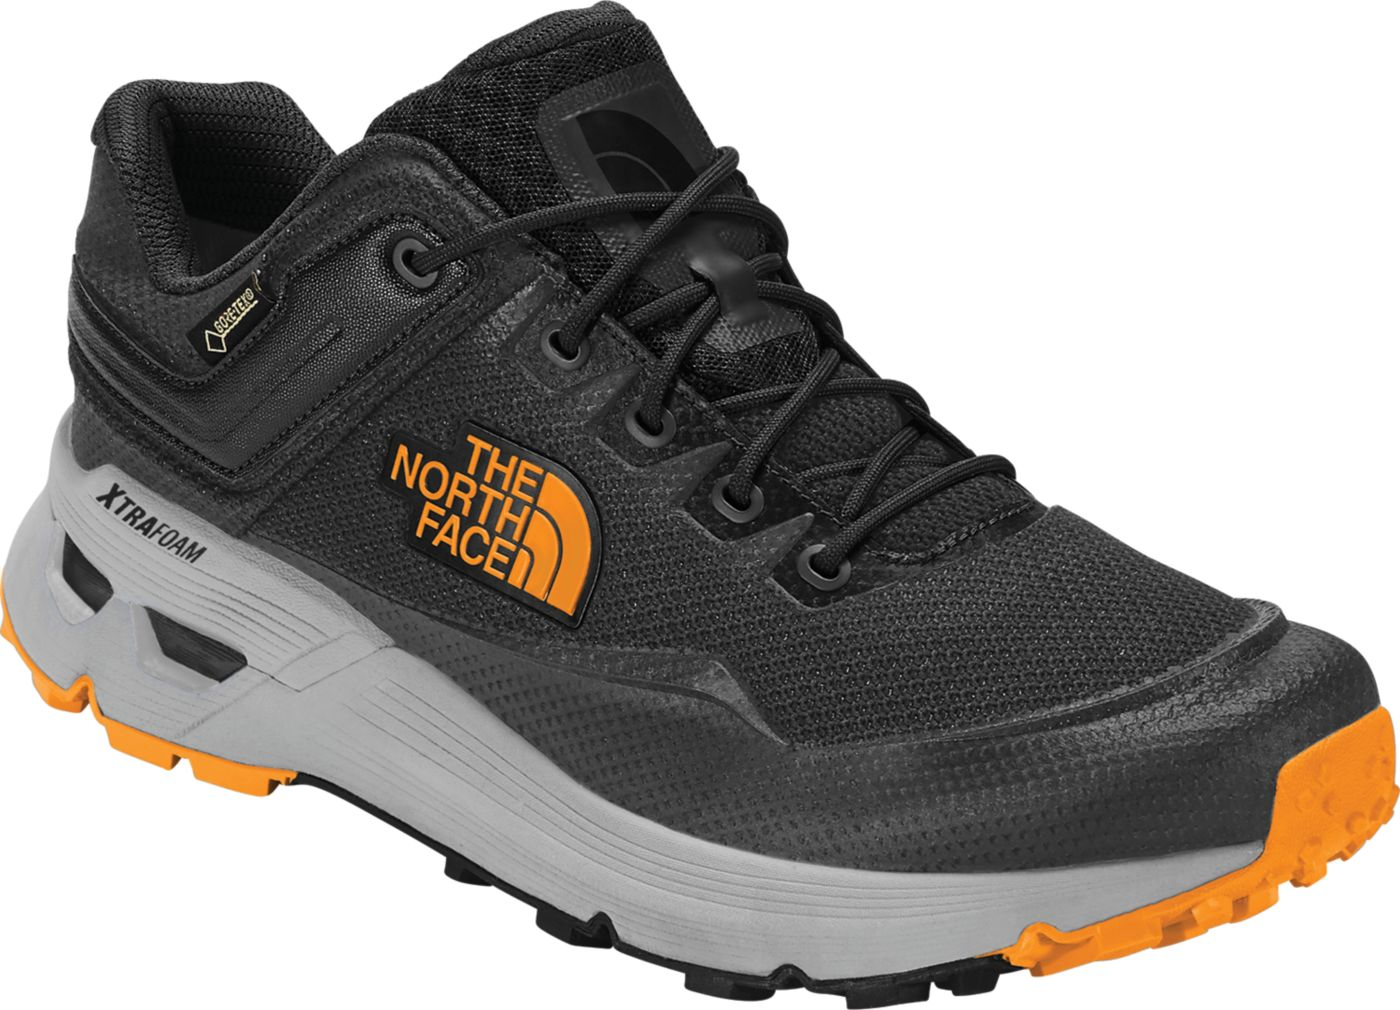 The North Face Men's Safien GTX Waterproof Hiking Shoes